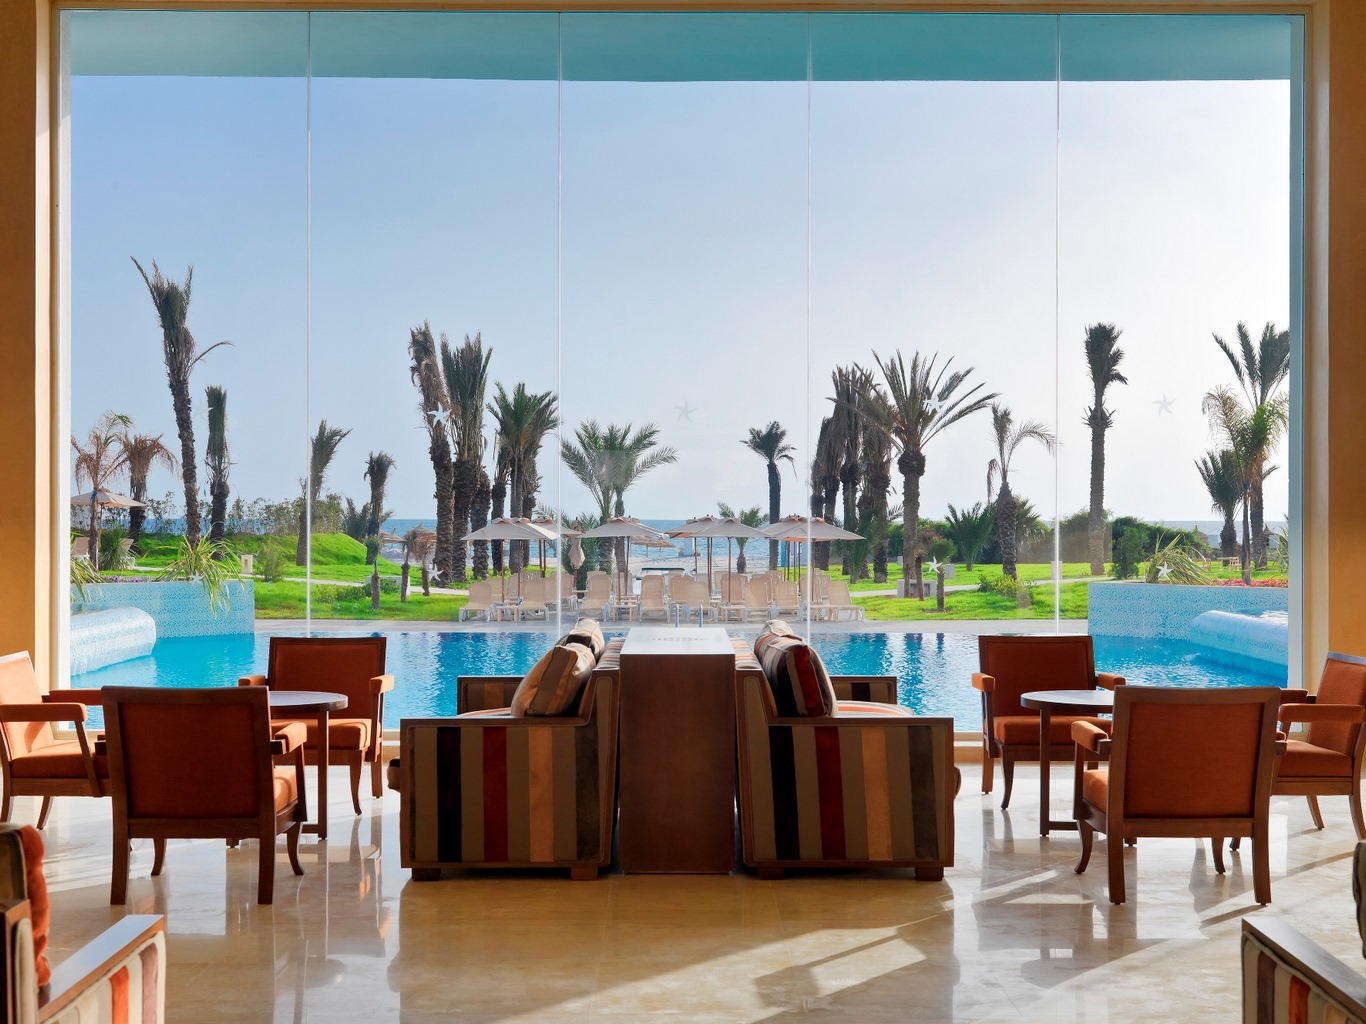 Photo n° 5 IBEROSTAR ROYAL MANSOUR 5* - Demi Pension 2014